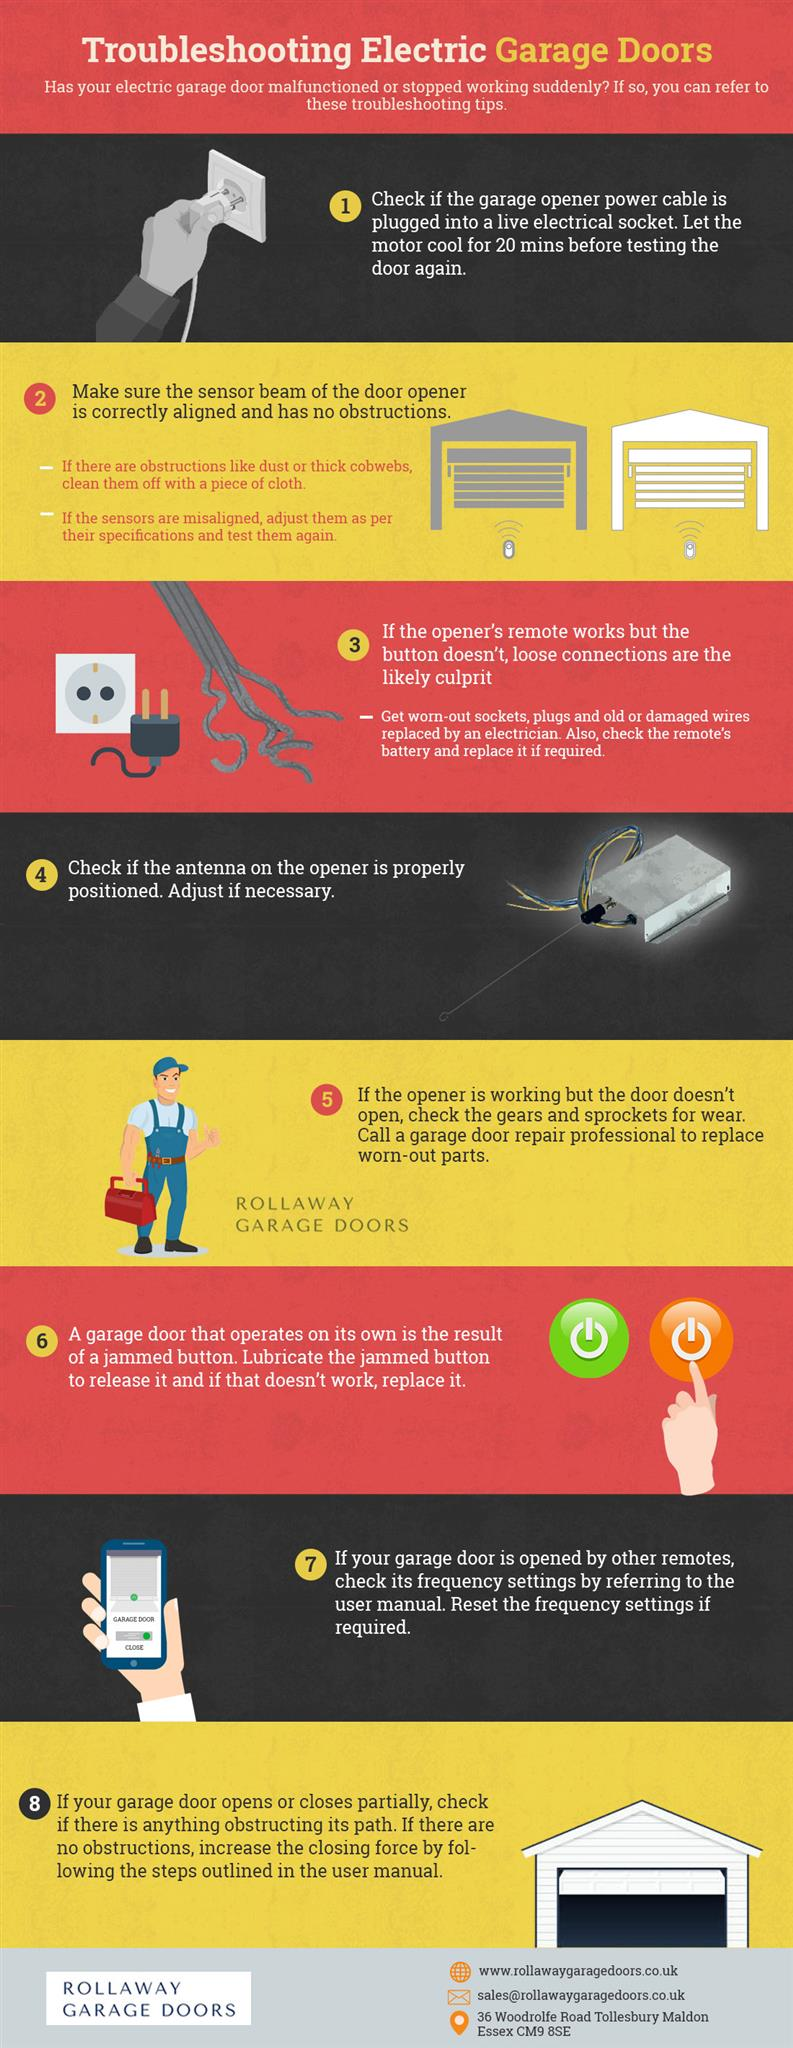 Troubleshooting Electric Garage Doors Infographic